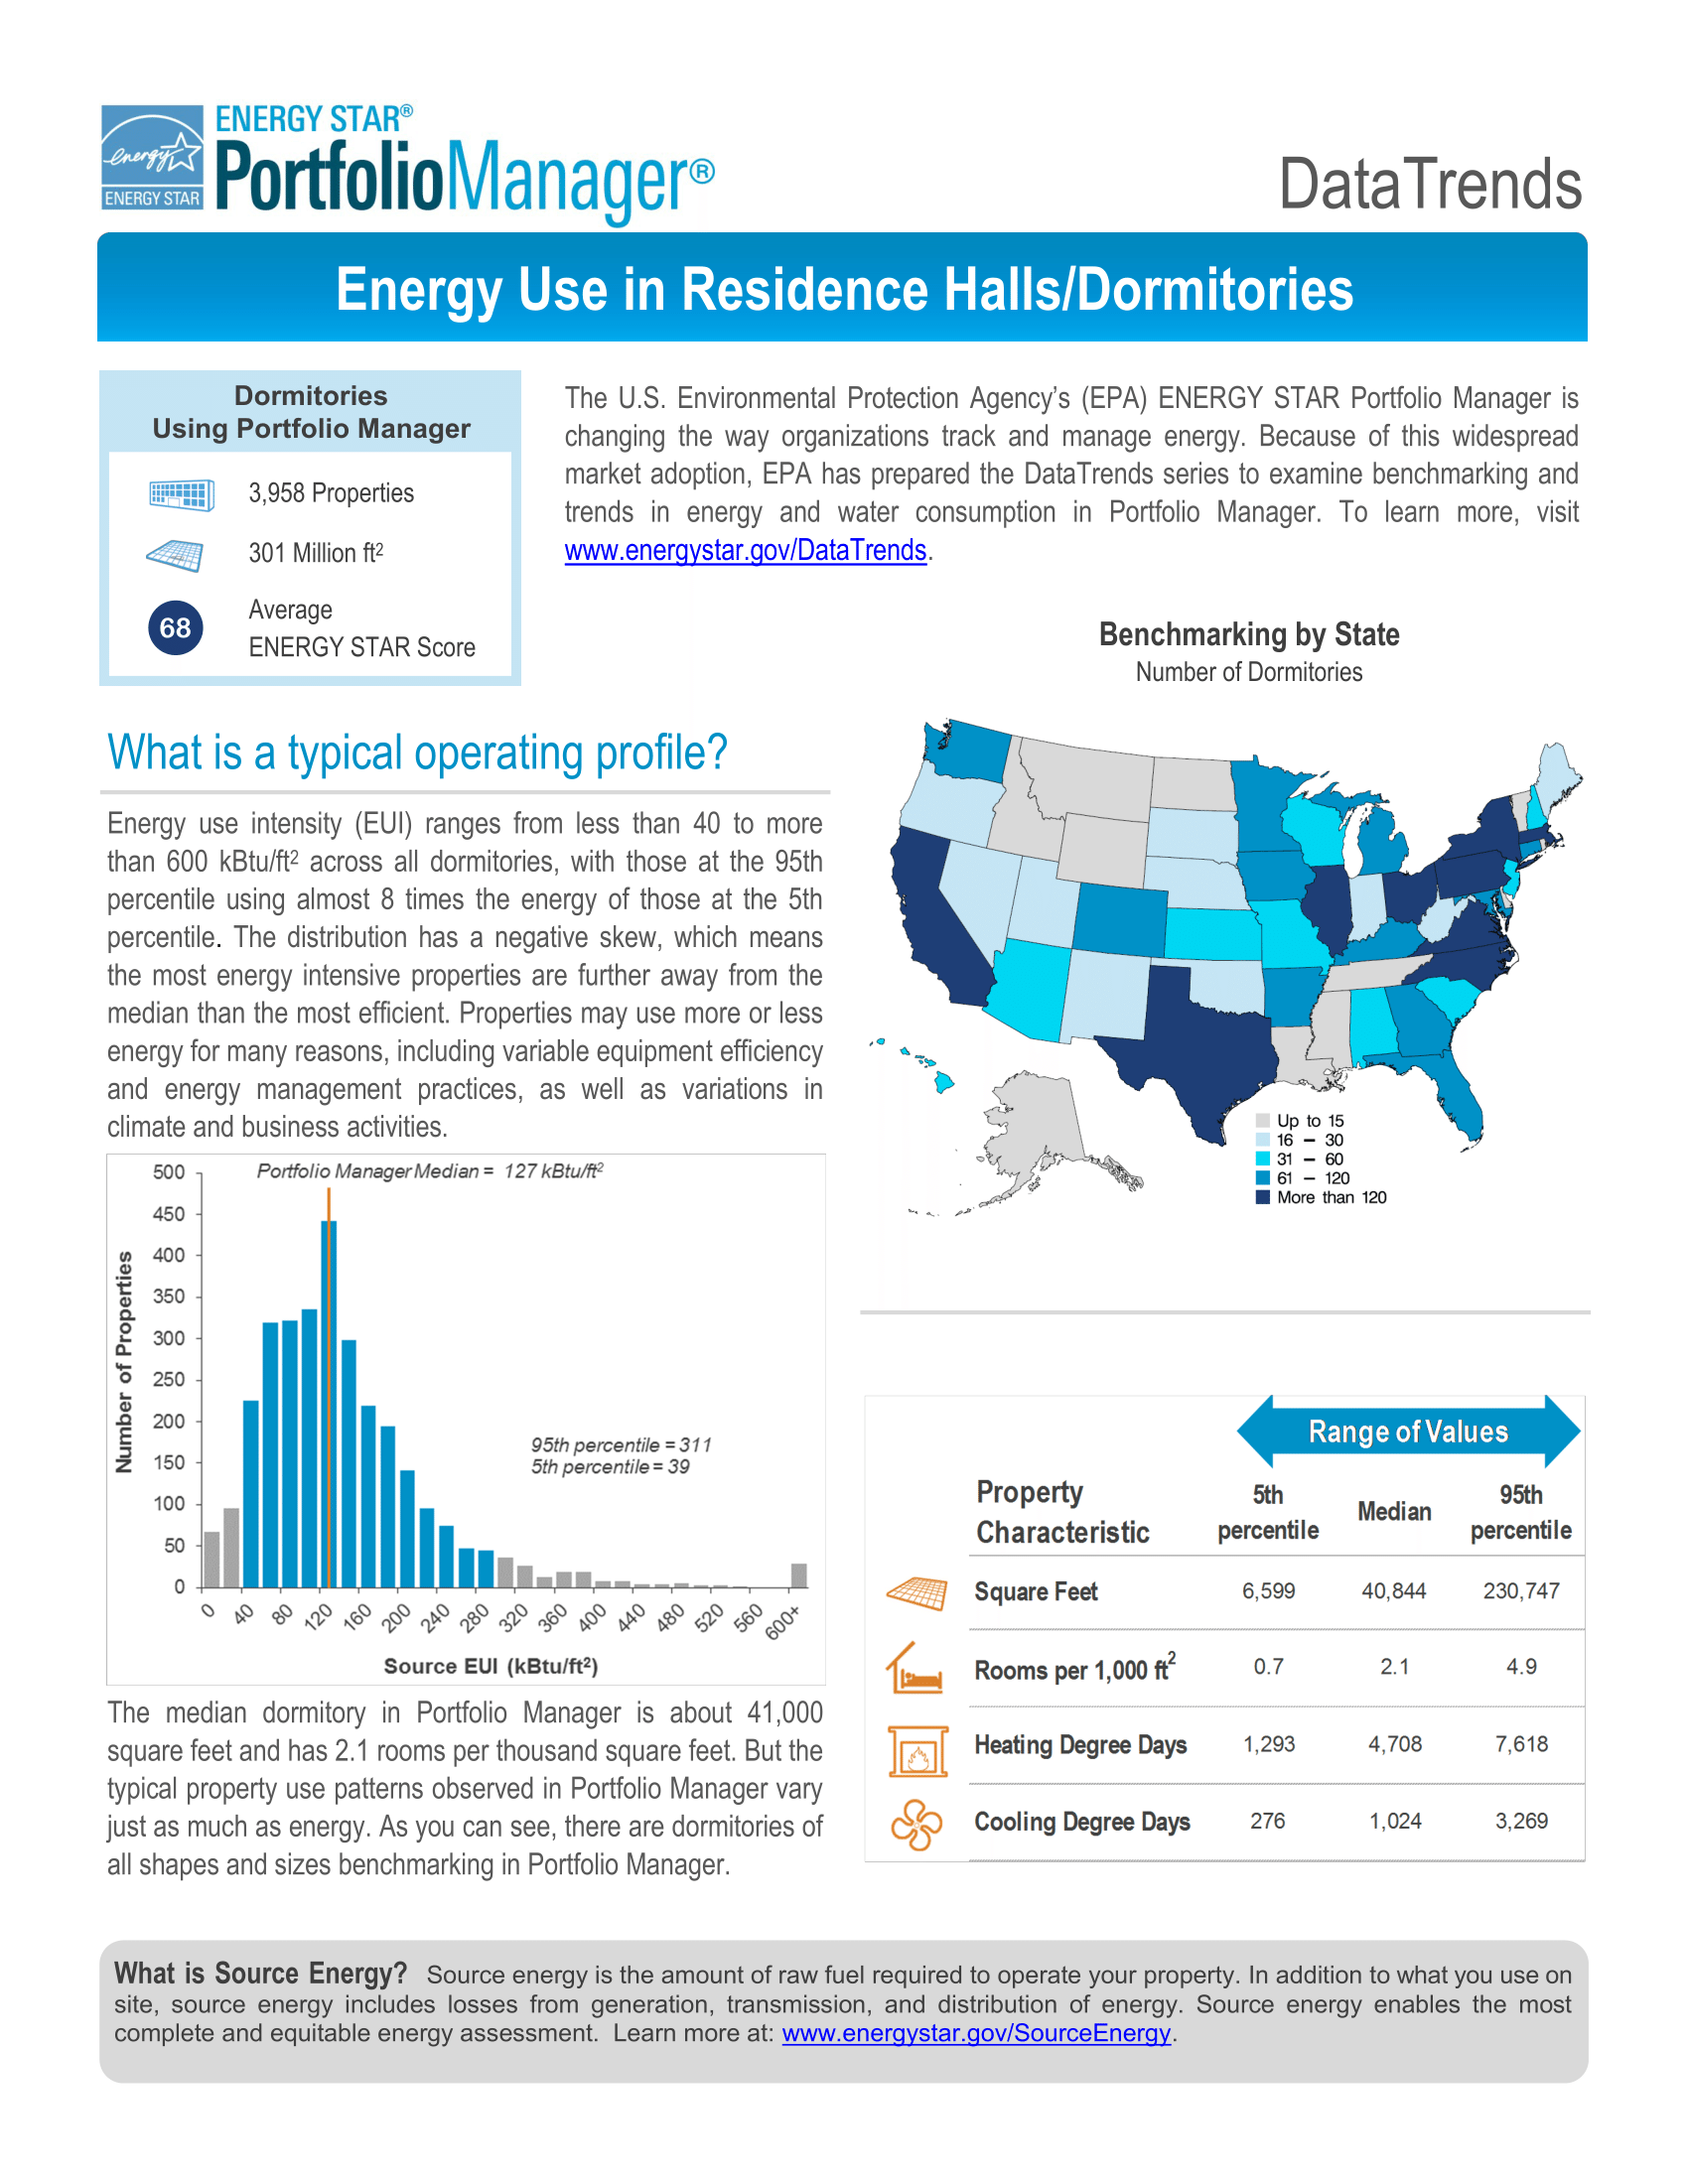 Energy Use in Residence Halls / Dormitories